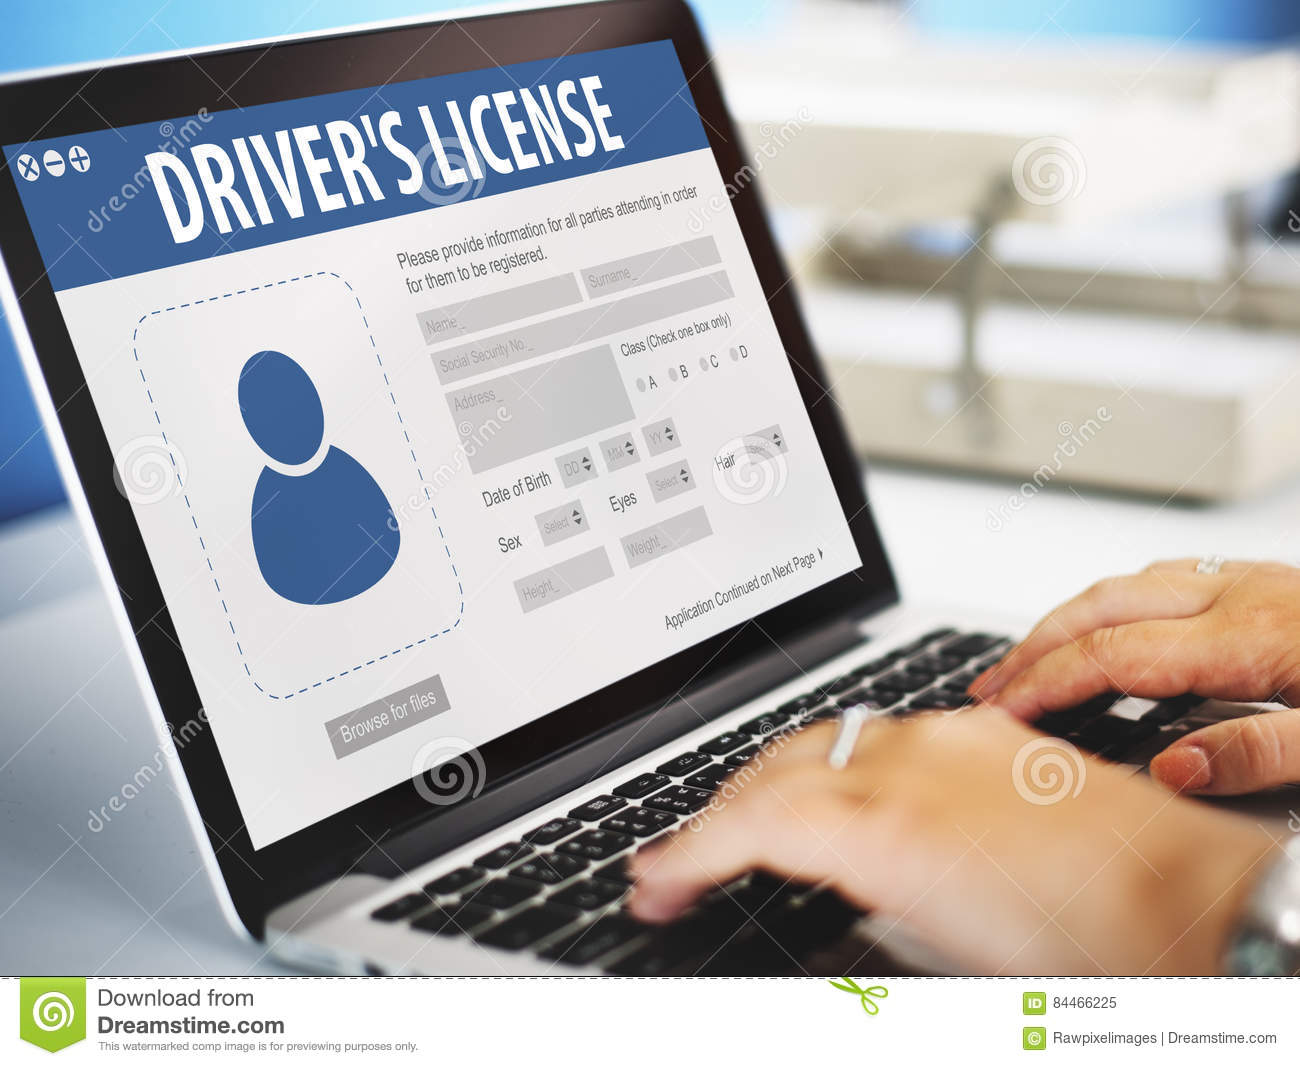 Drivers License Registration Application Webpage Concept